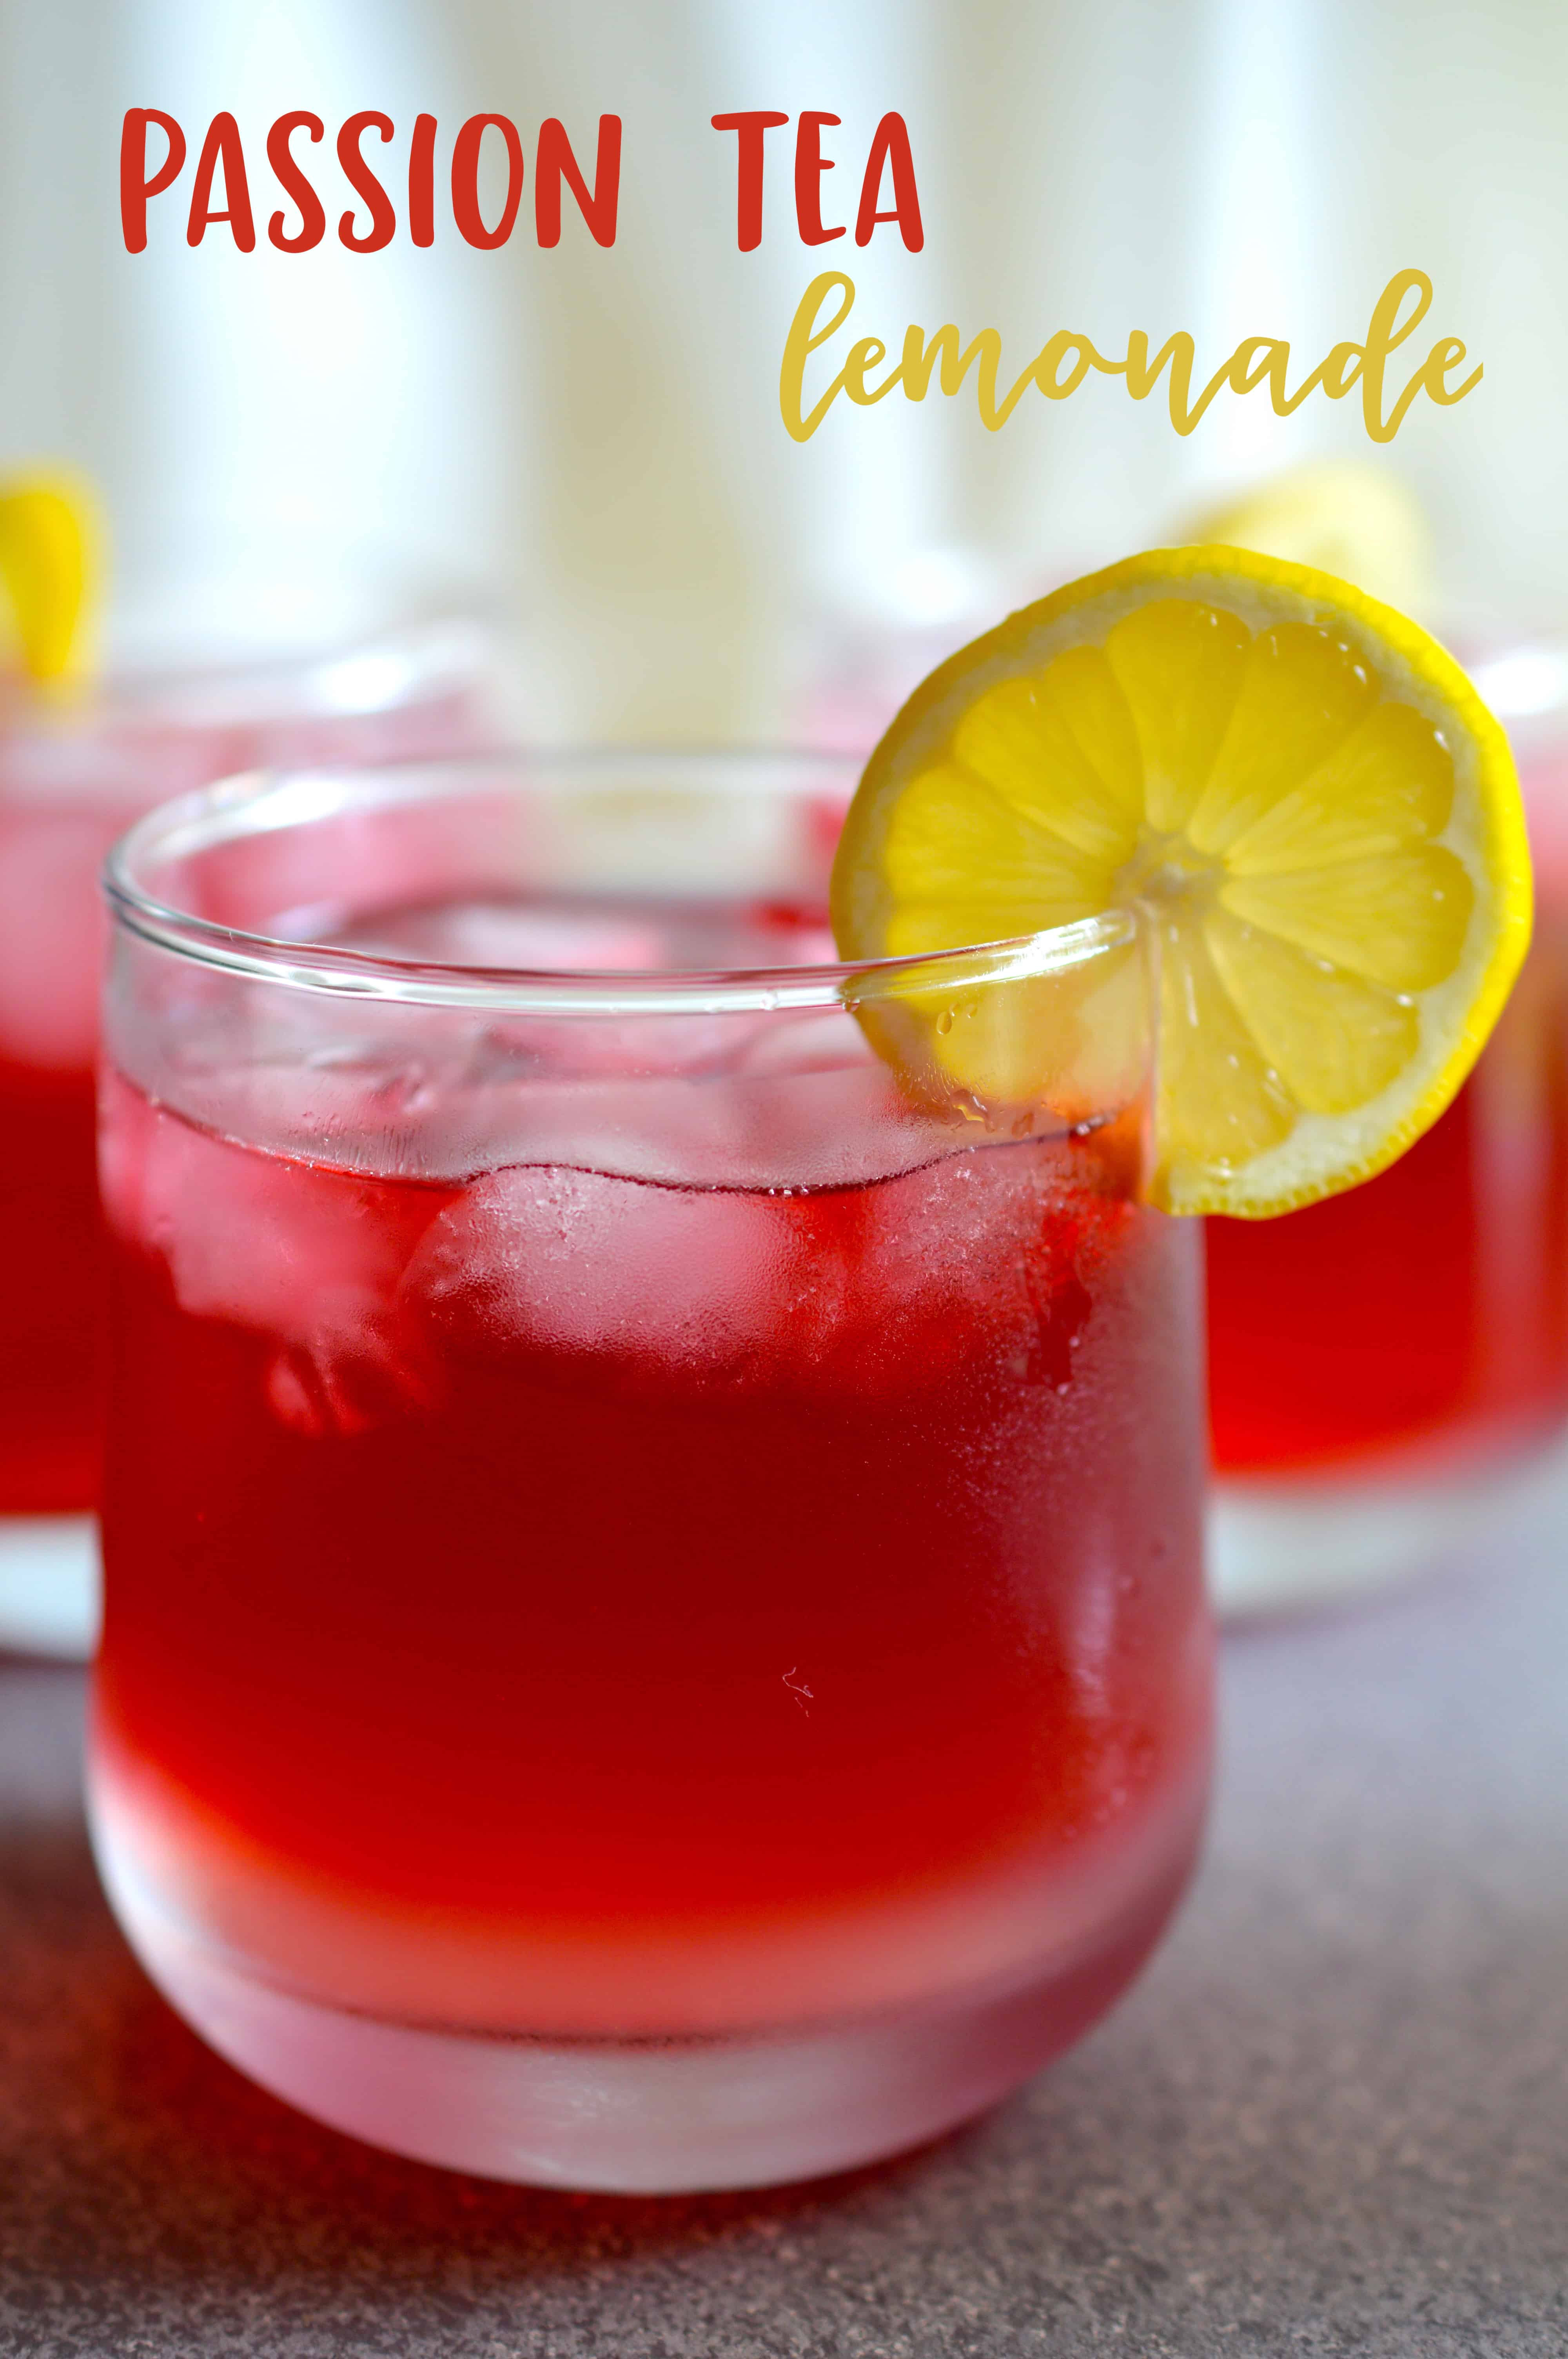 Save so much money by making your own Passion Tea Lemonade at home instead of going to Starbucks. This sweet and refreshing drink is the perfect drink for summer!  #tea #summer #icedtea #passiontea #starbucks #lemonade